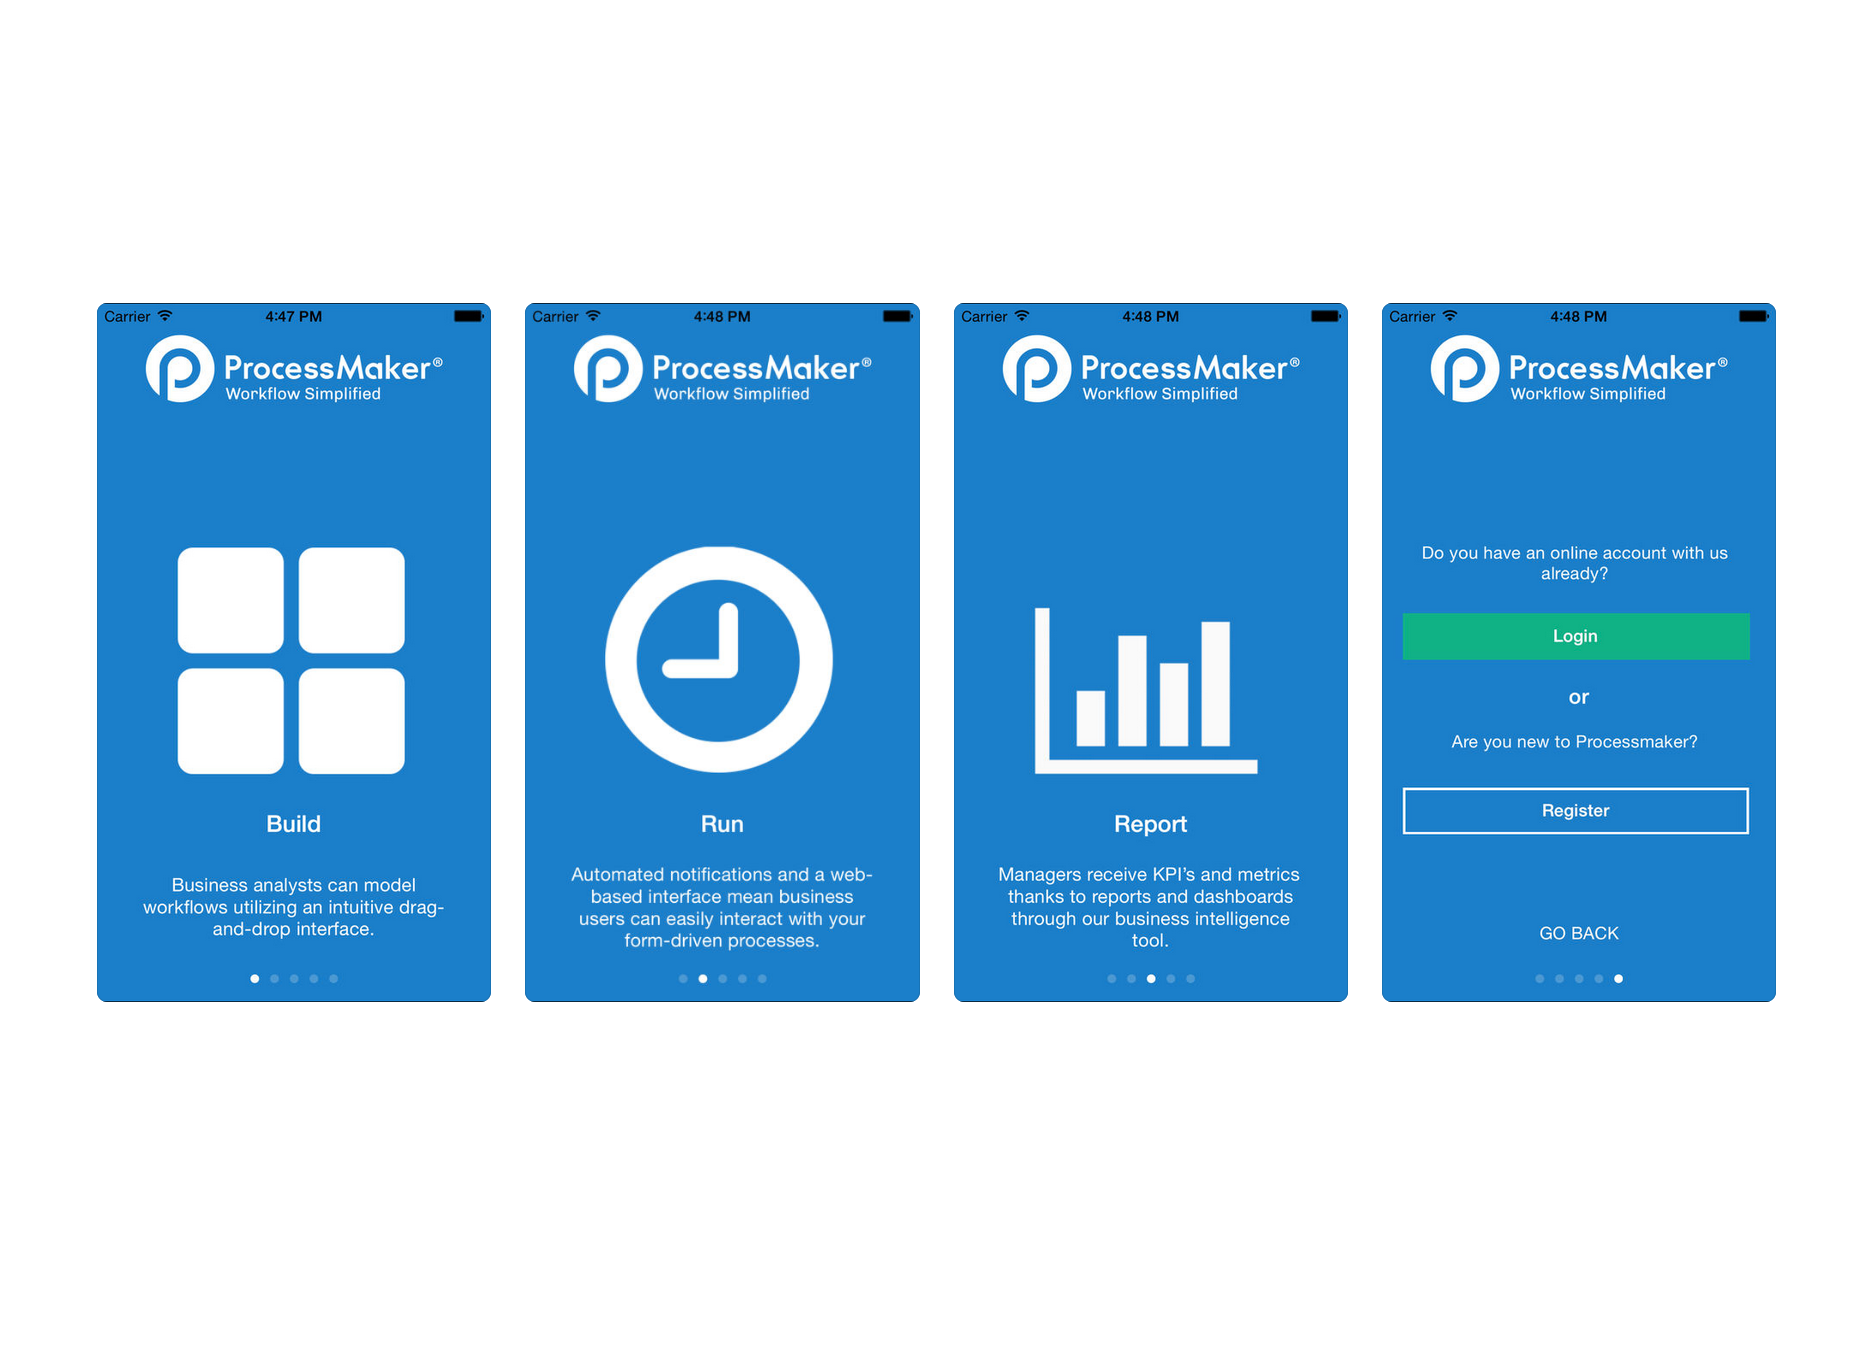 ProcessMaker app for iOS and Android devices promises on or offline functionality, plus mobilized features across running processes, building forms and viewing dashboard reports while on the move